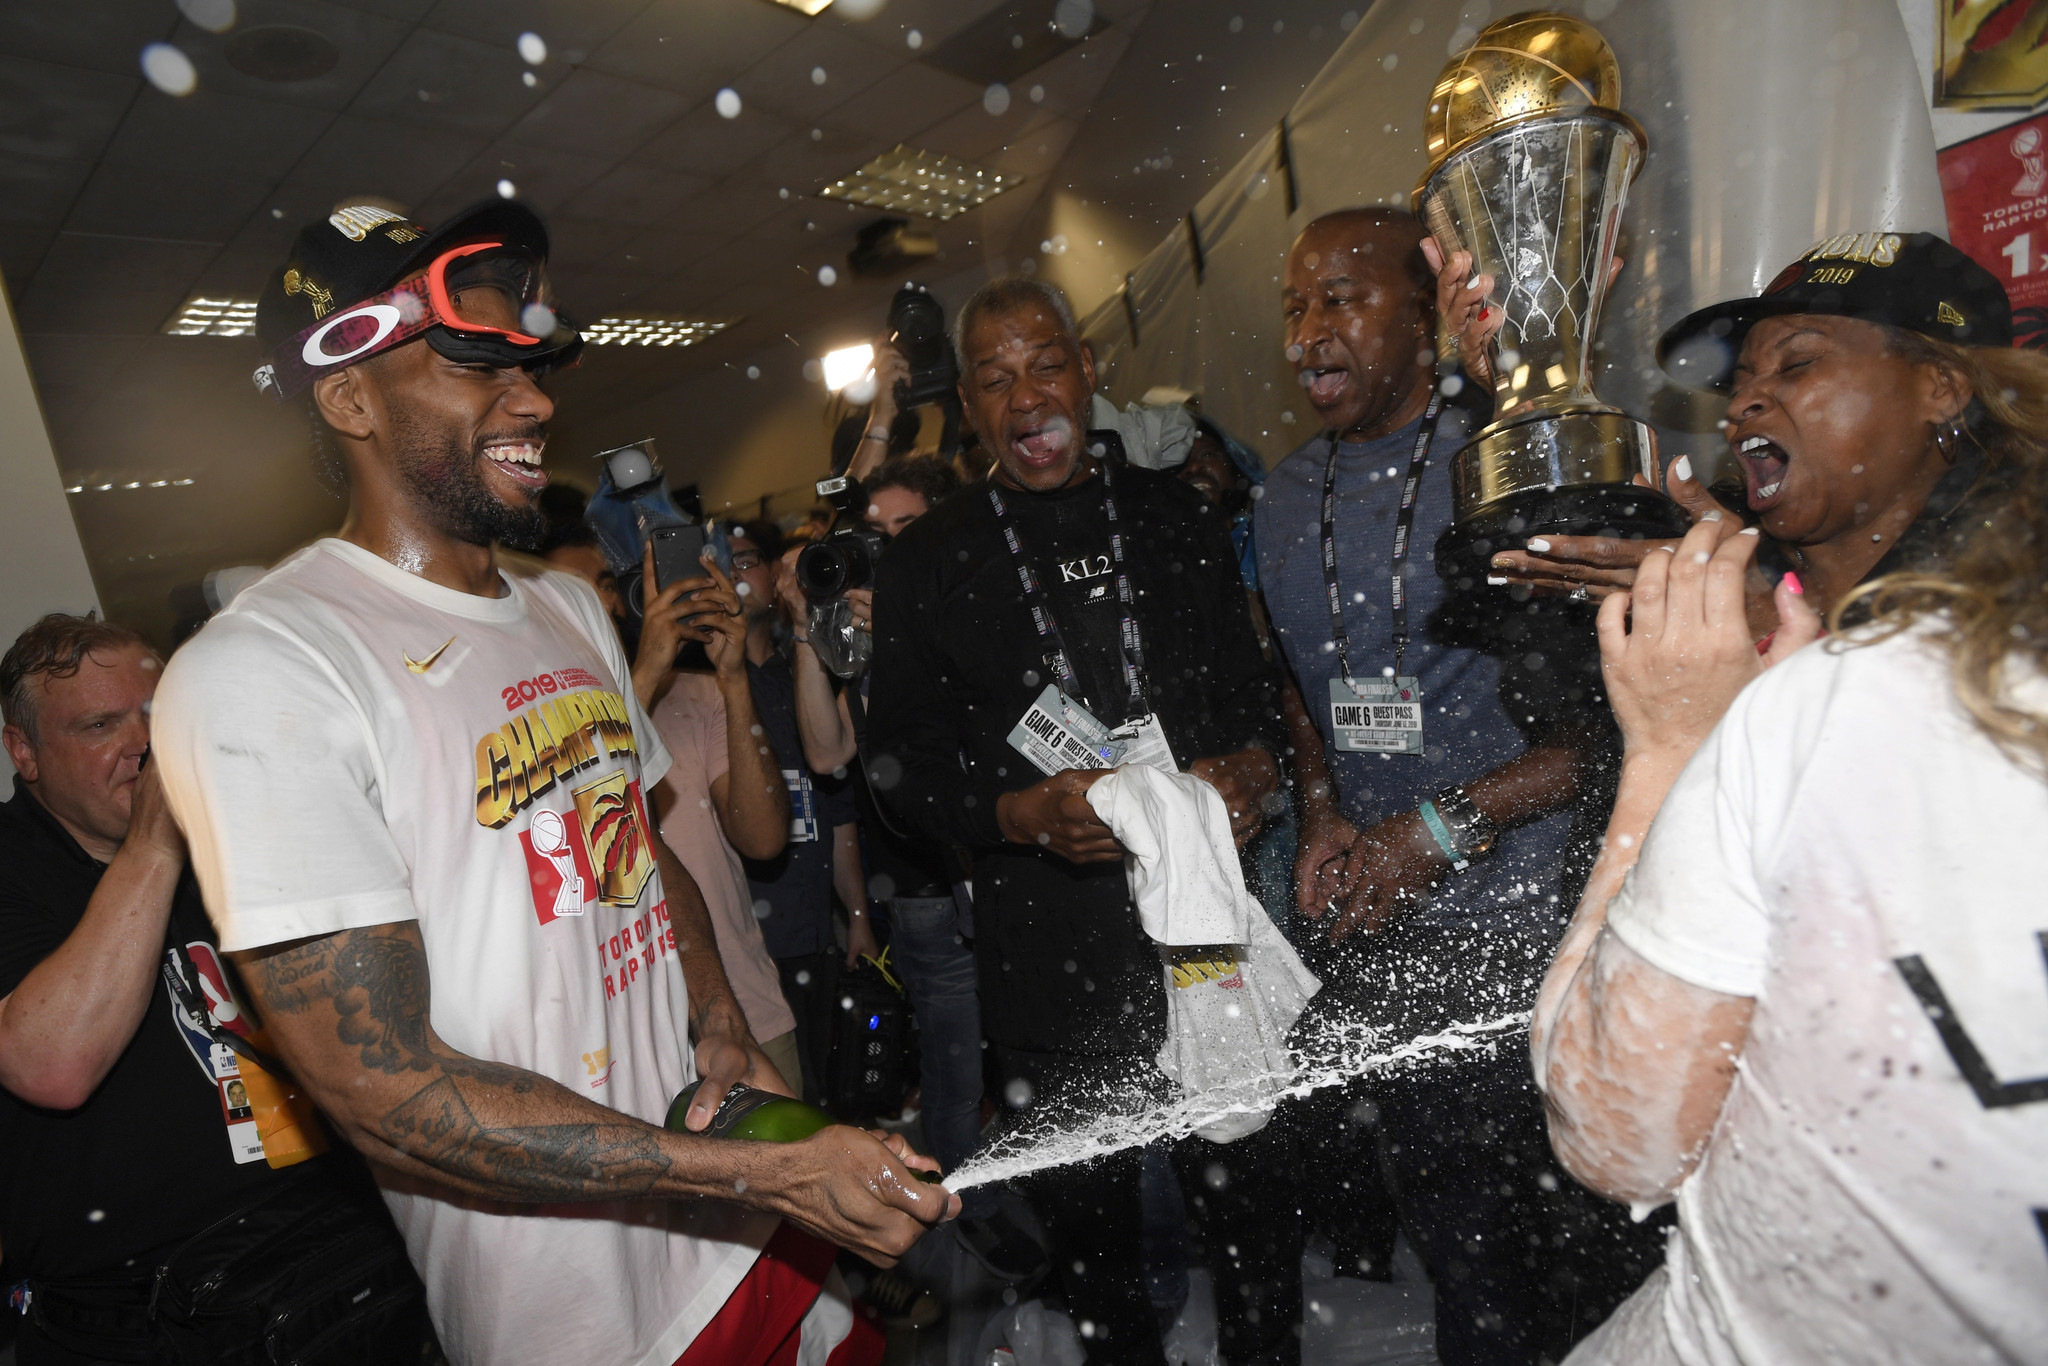 Toronto Raptors forward Kawhi Leonard sprays his mother, Kim Robertson, with sparkling wine after th